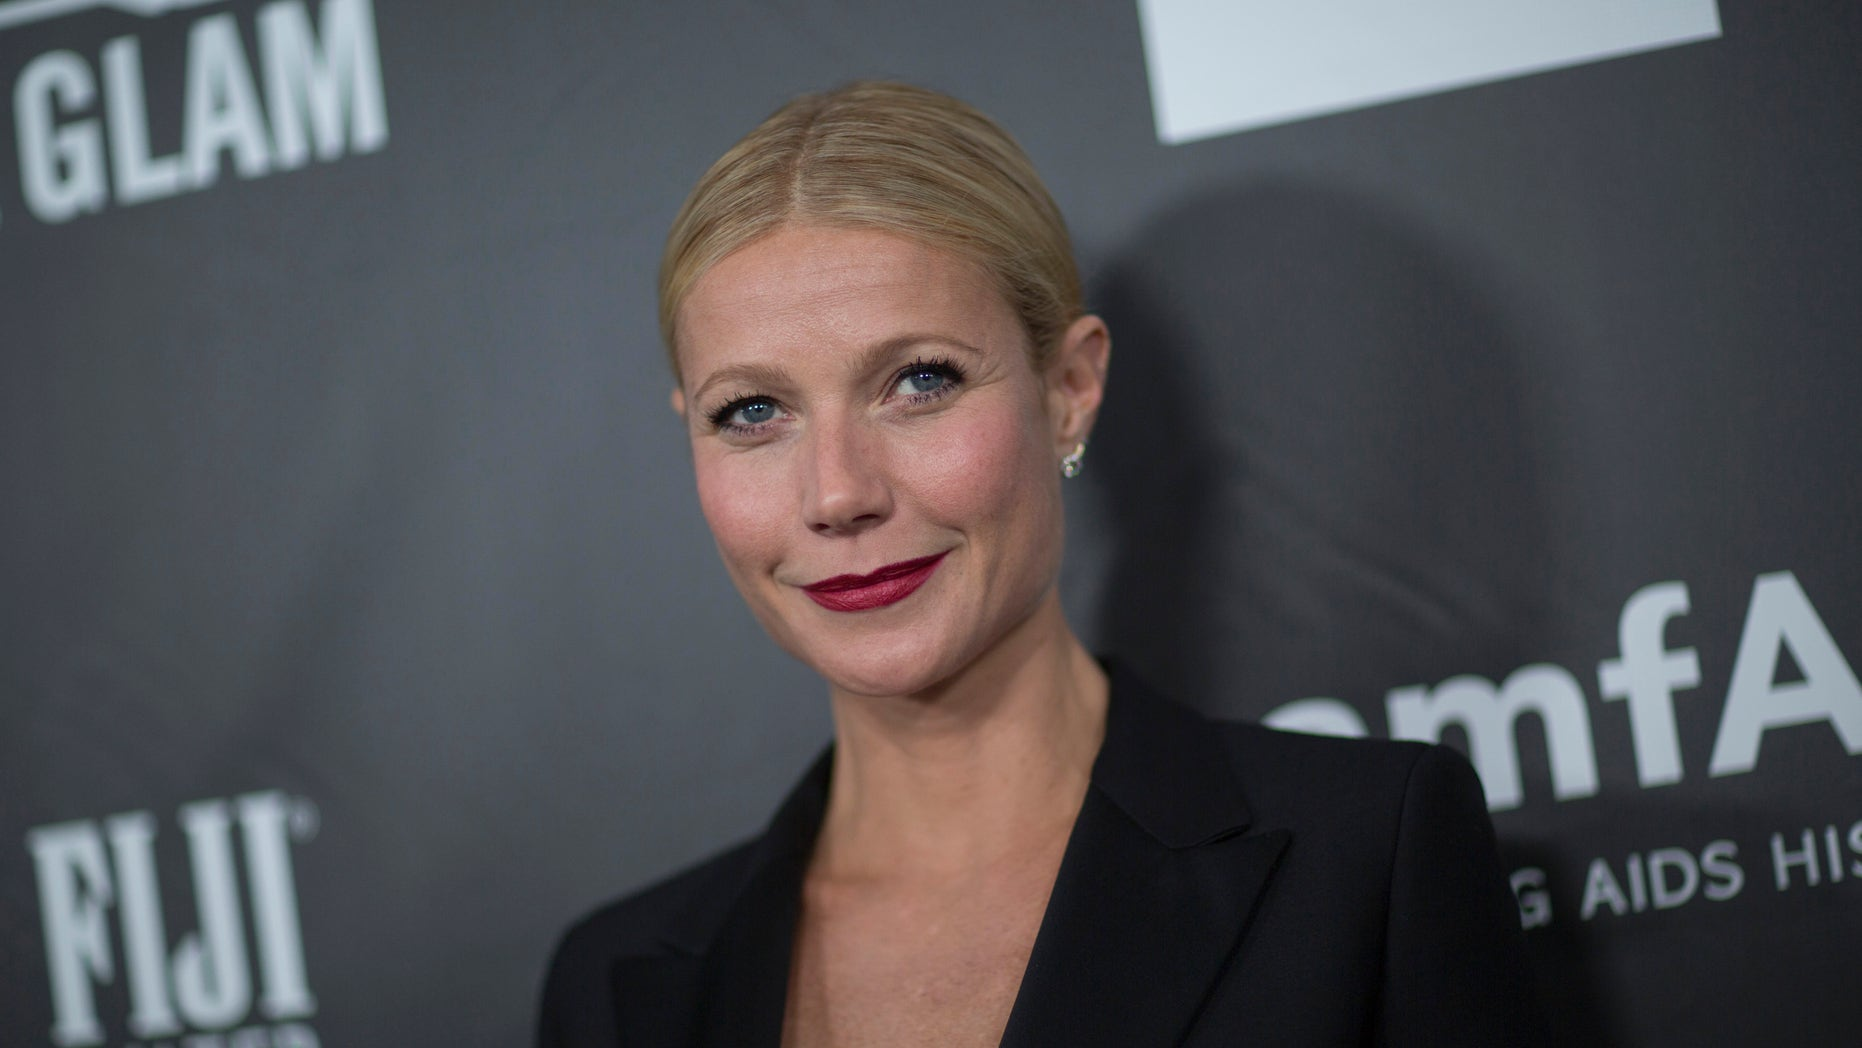 October 29, 2014. Gwyneth Paltrow poses at the amfAR's fifth annual Inspiration Gala in Los Angeles, California.